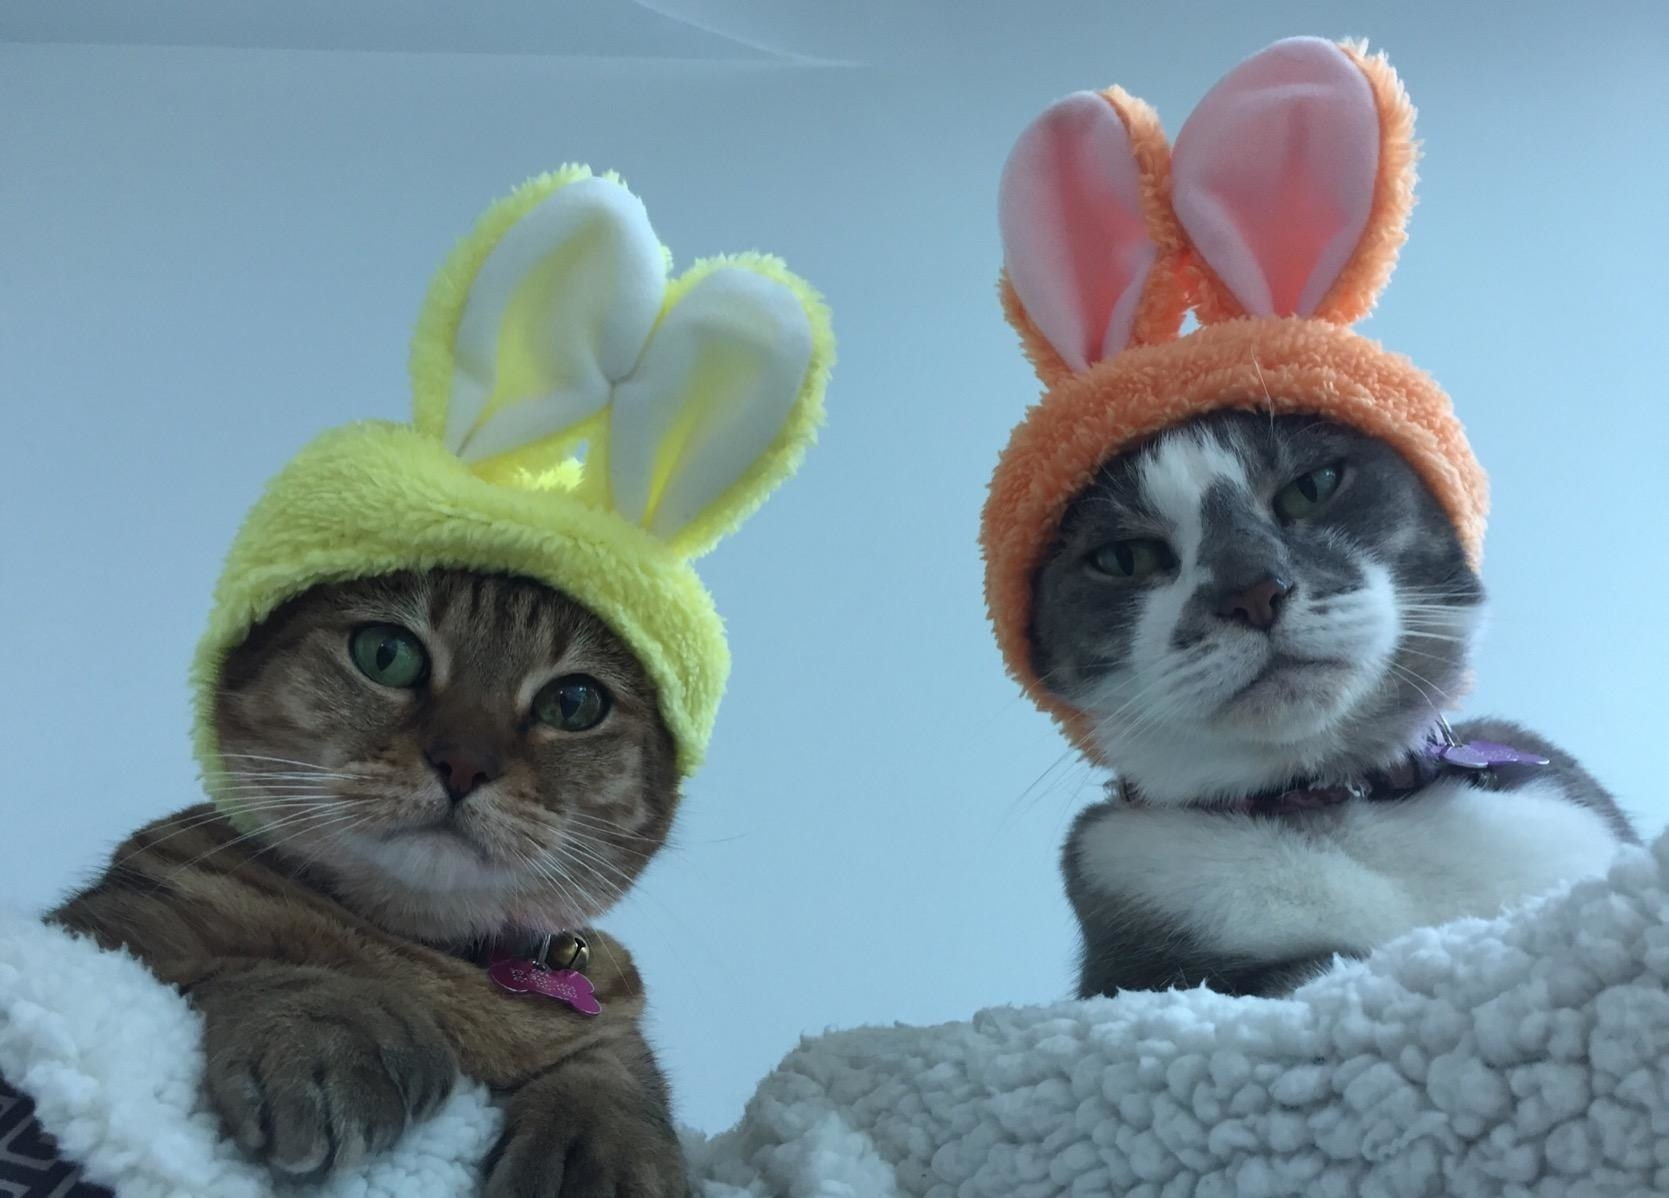 Two cats wearing the rabbit ears hat — one yellow and one orange